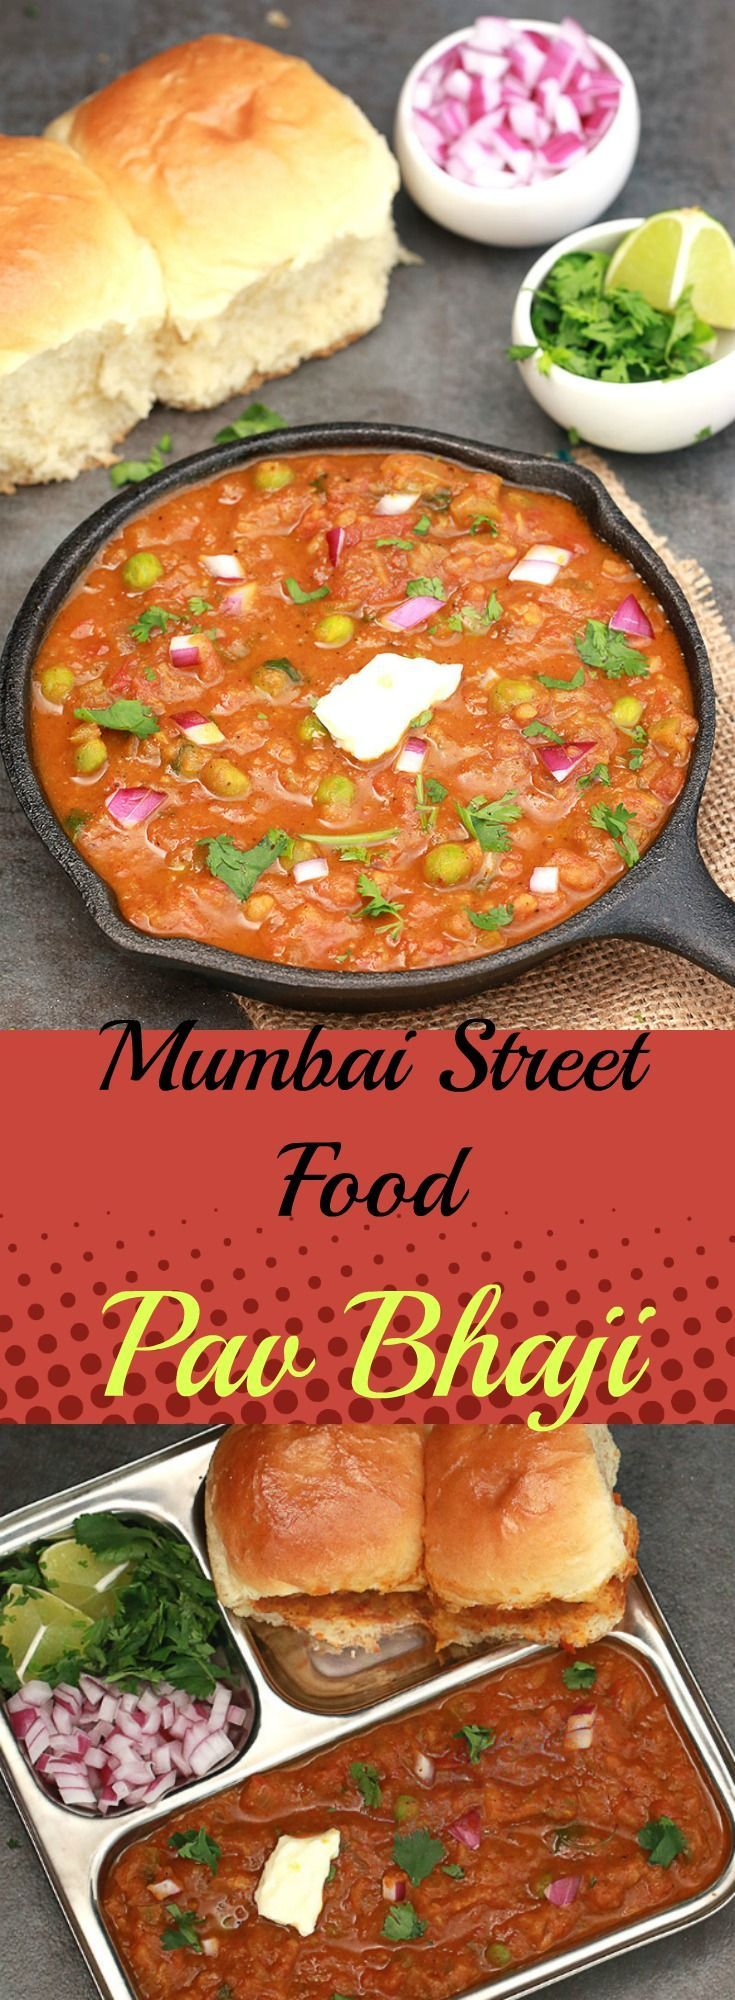 Pav Bhaji is an Indian fast food dish. The pav-bhaji is a spicy preparation with a mixture of vegetables, either whole or mashed, a generous dose of fresh tomatoes, onions, garlic, a dollop of butter, consumed with warm bread gently or crispy fried in butter - an all-time, any-time favorite with Mumbaikars.